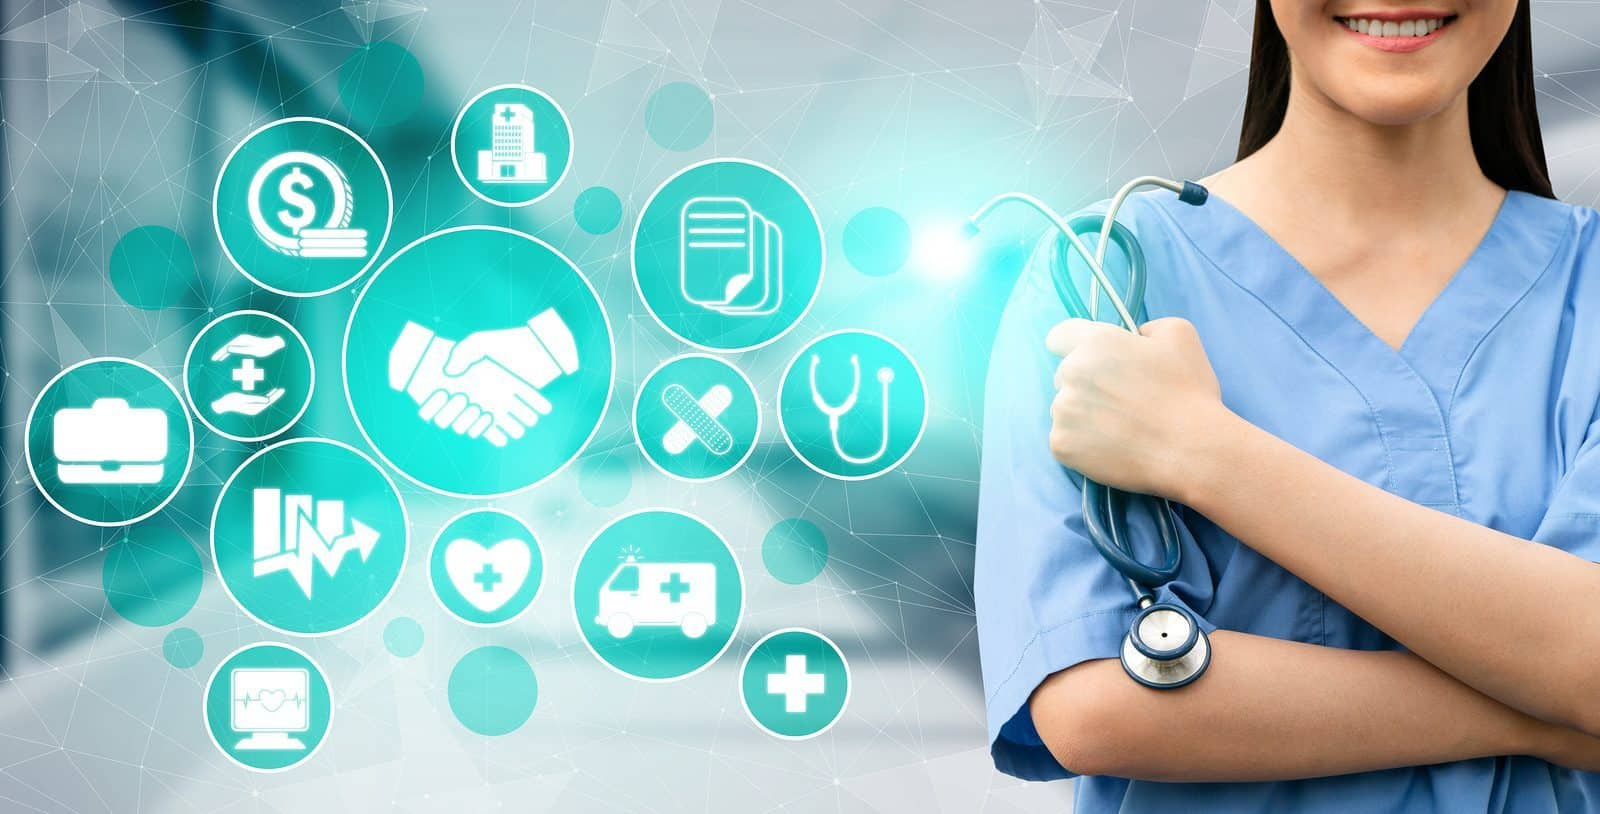 bigstock-doctor-with-health-insurance-h-317772619-5939077-1136169